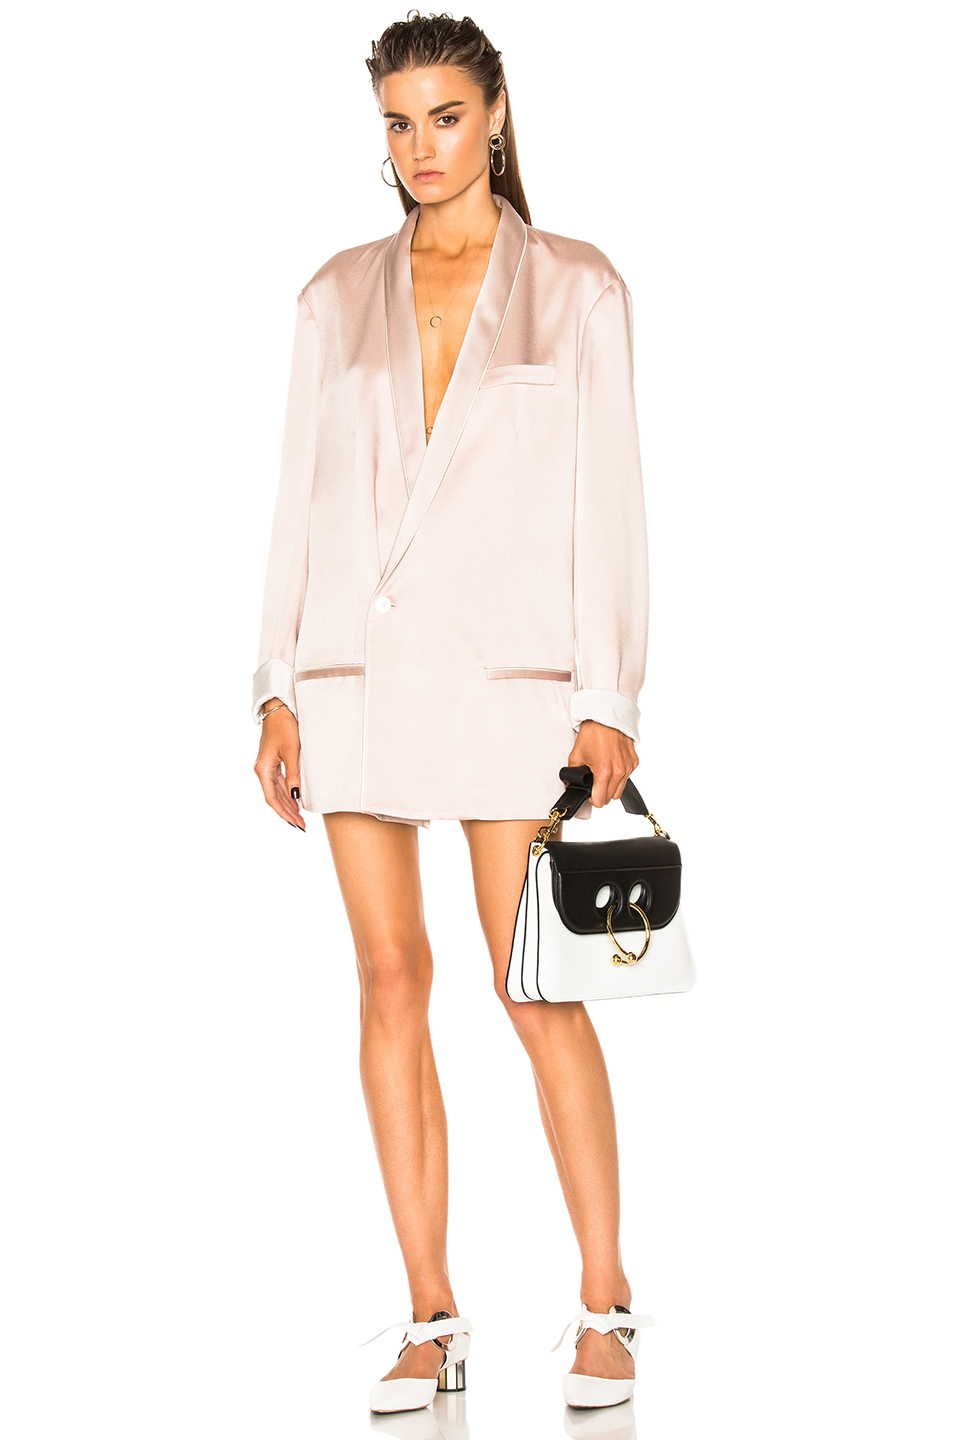 Haider Ackermann Oversized Blazer in Neutrals